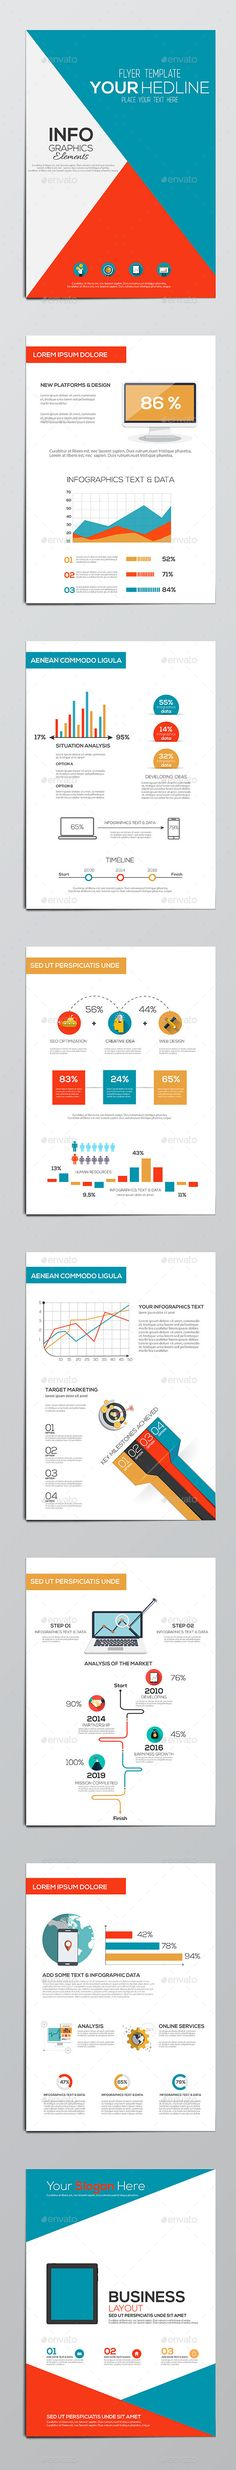 Business Infographics Elements — Vector EPS #abstract #flat • Available here → https://graphicriver.net/item/business-infographics-elements/10313700?ref=pxcr